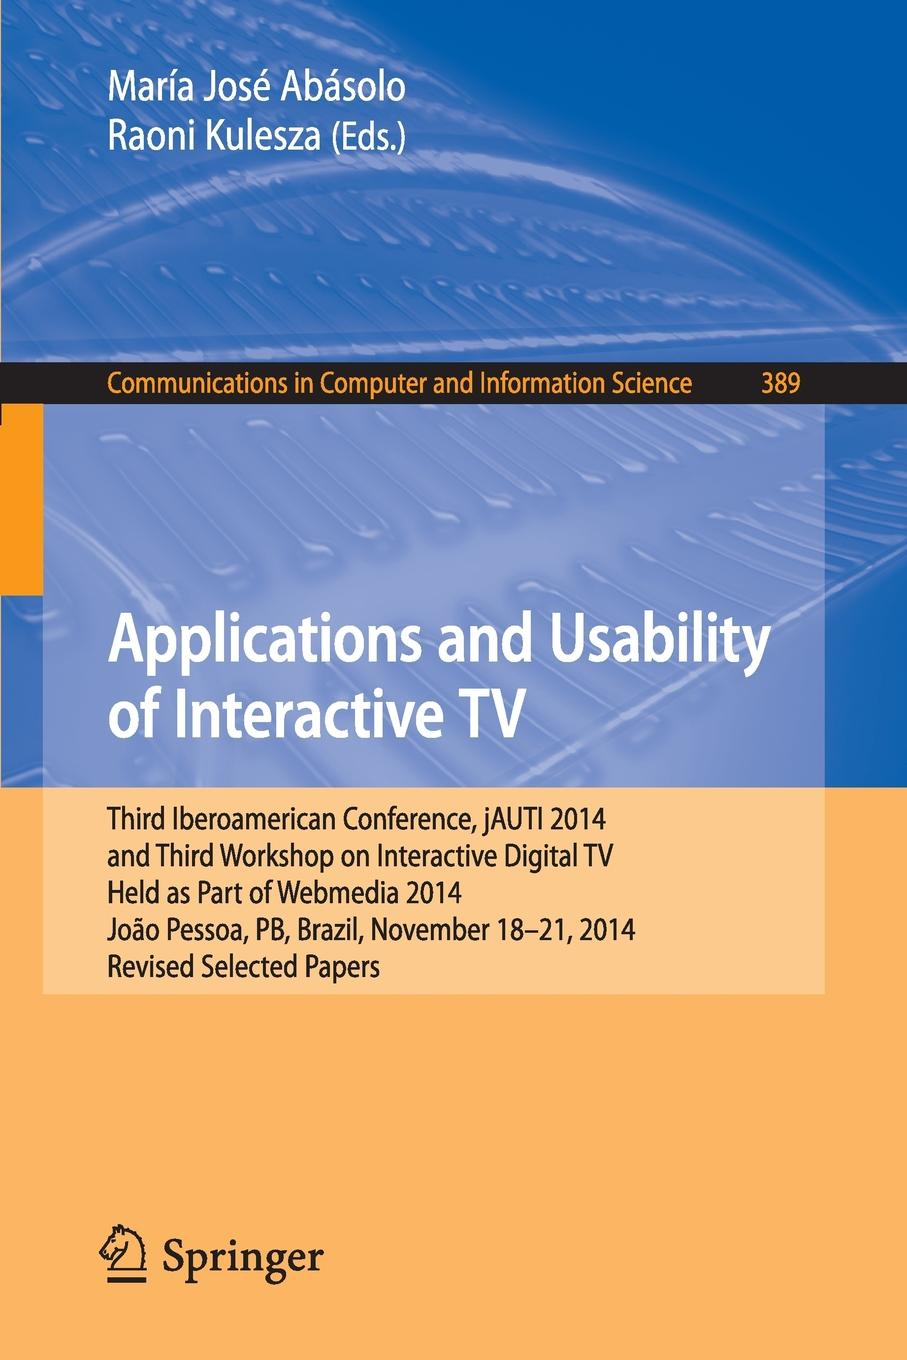 Applications and Usability of Interactive TV. Third Iberoamerican Conference, jAUTI 2014, and Third Workshop on Interactive Digital TV, Held as Part of Webmedia 2014, Joao Pessoa, PB, Brazil, November 18-21, 2014. Revised Selected Papers кошелек зарядка as seen on tv